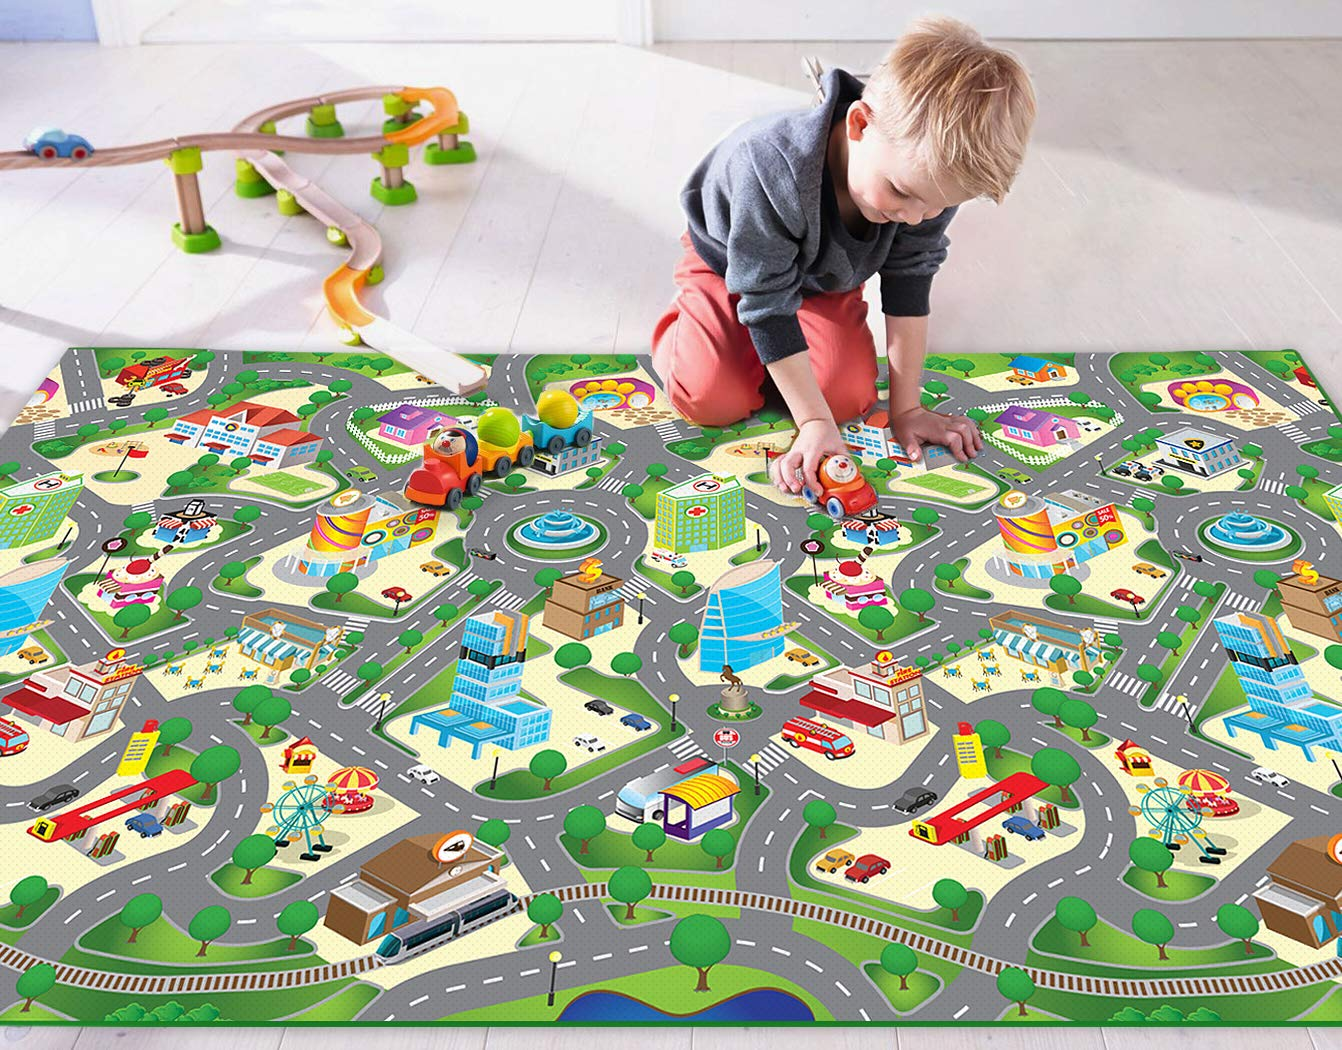 Doodoo Play Mat Collections for Kids Toddler Child Baby, Large 79inch X 47inch, EVA, Superior Quality, Waterproof, Anti Slip, Easy Storage, Padded Soft Base, Educational, Stimulates Imagination